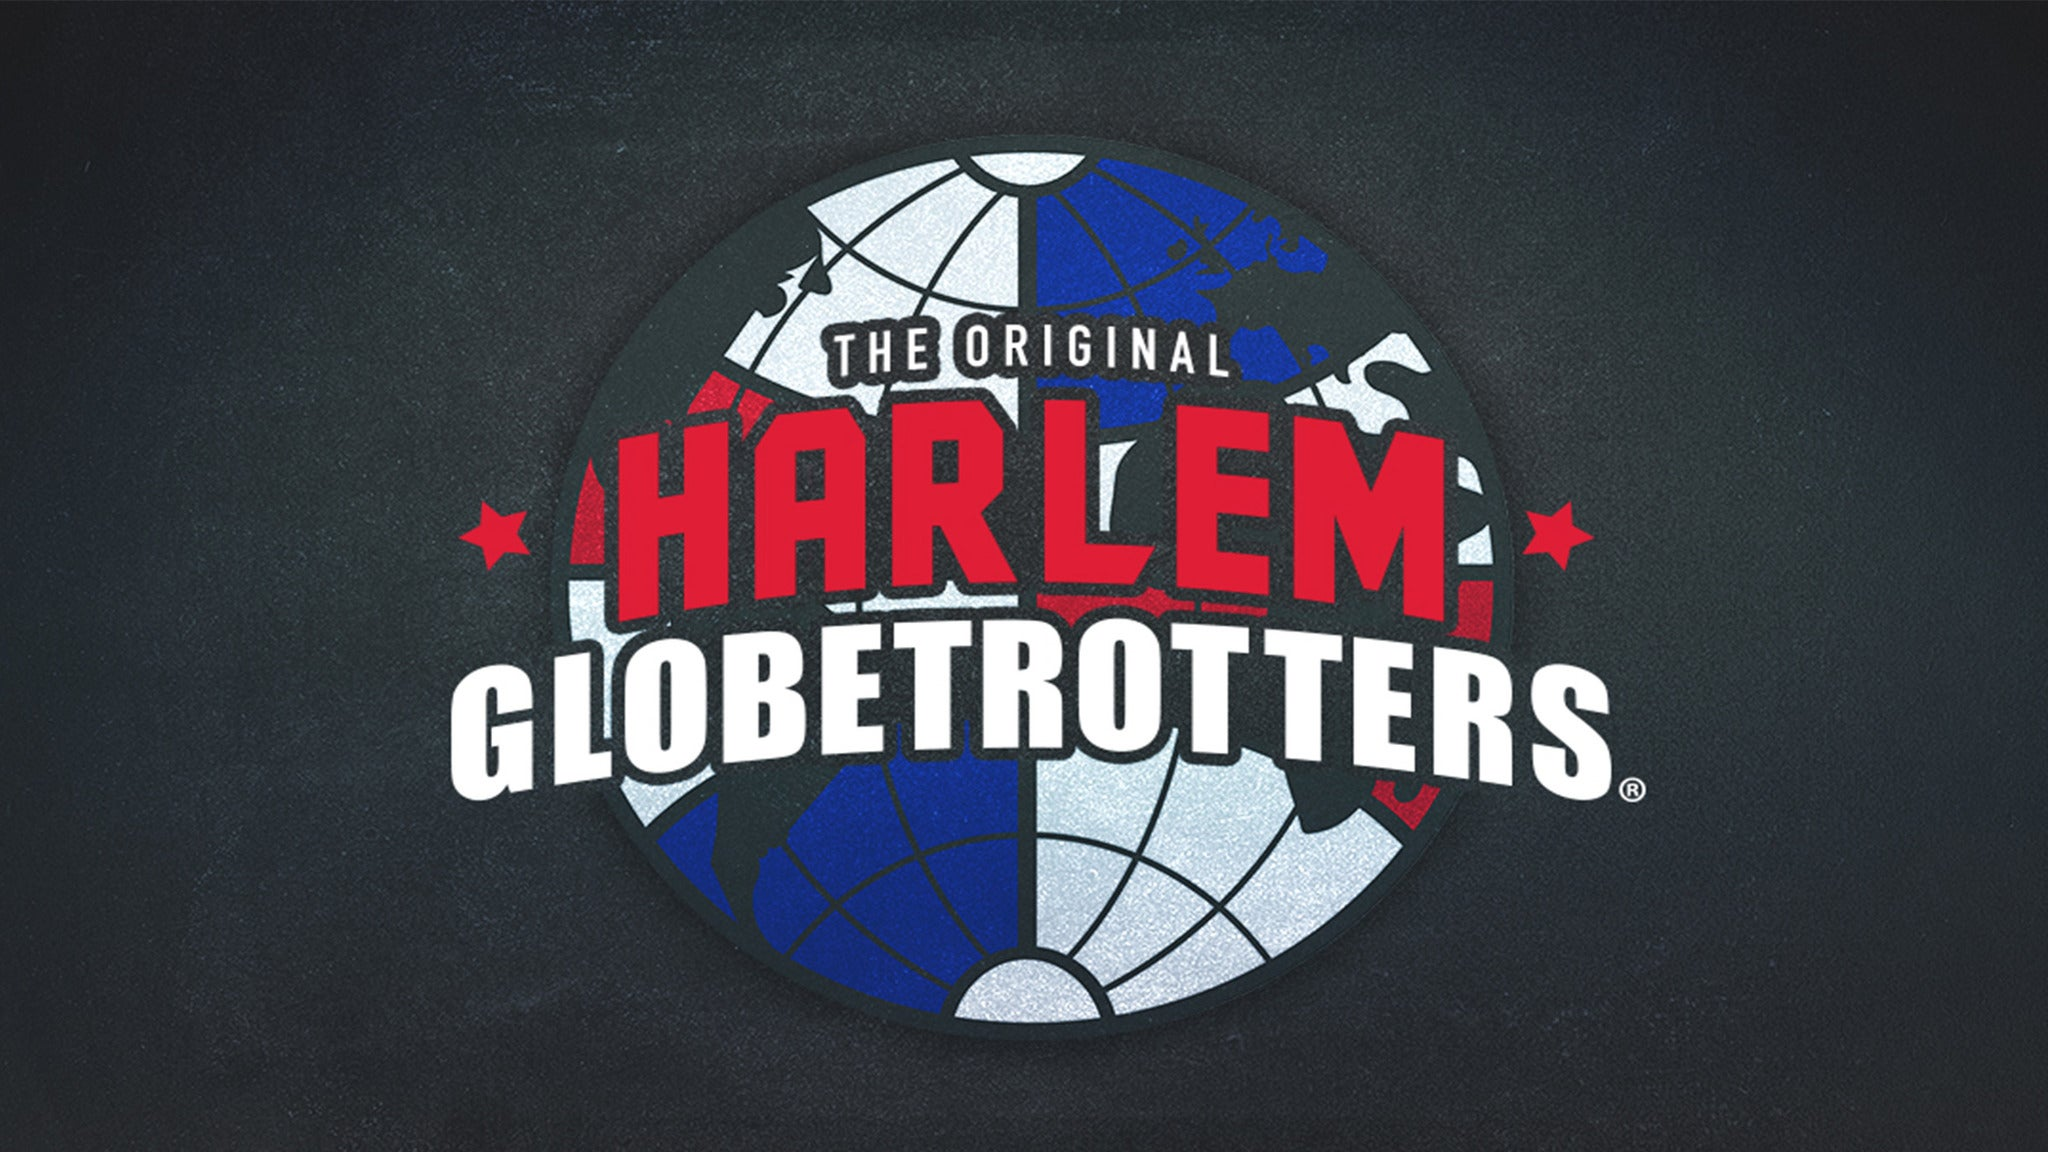 Harlem Globetrotters presale code for early tickets in Anaheim